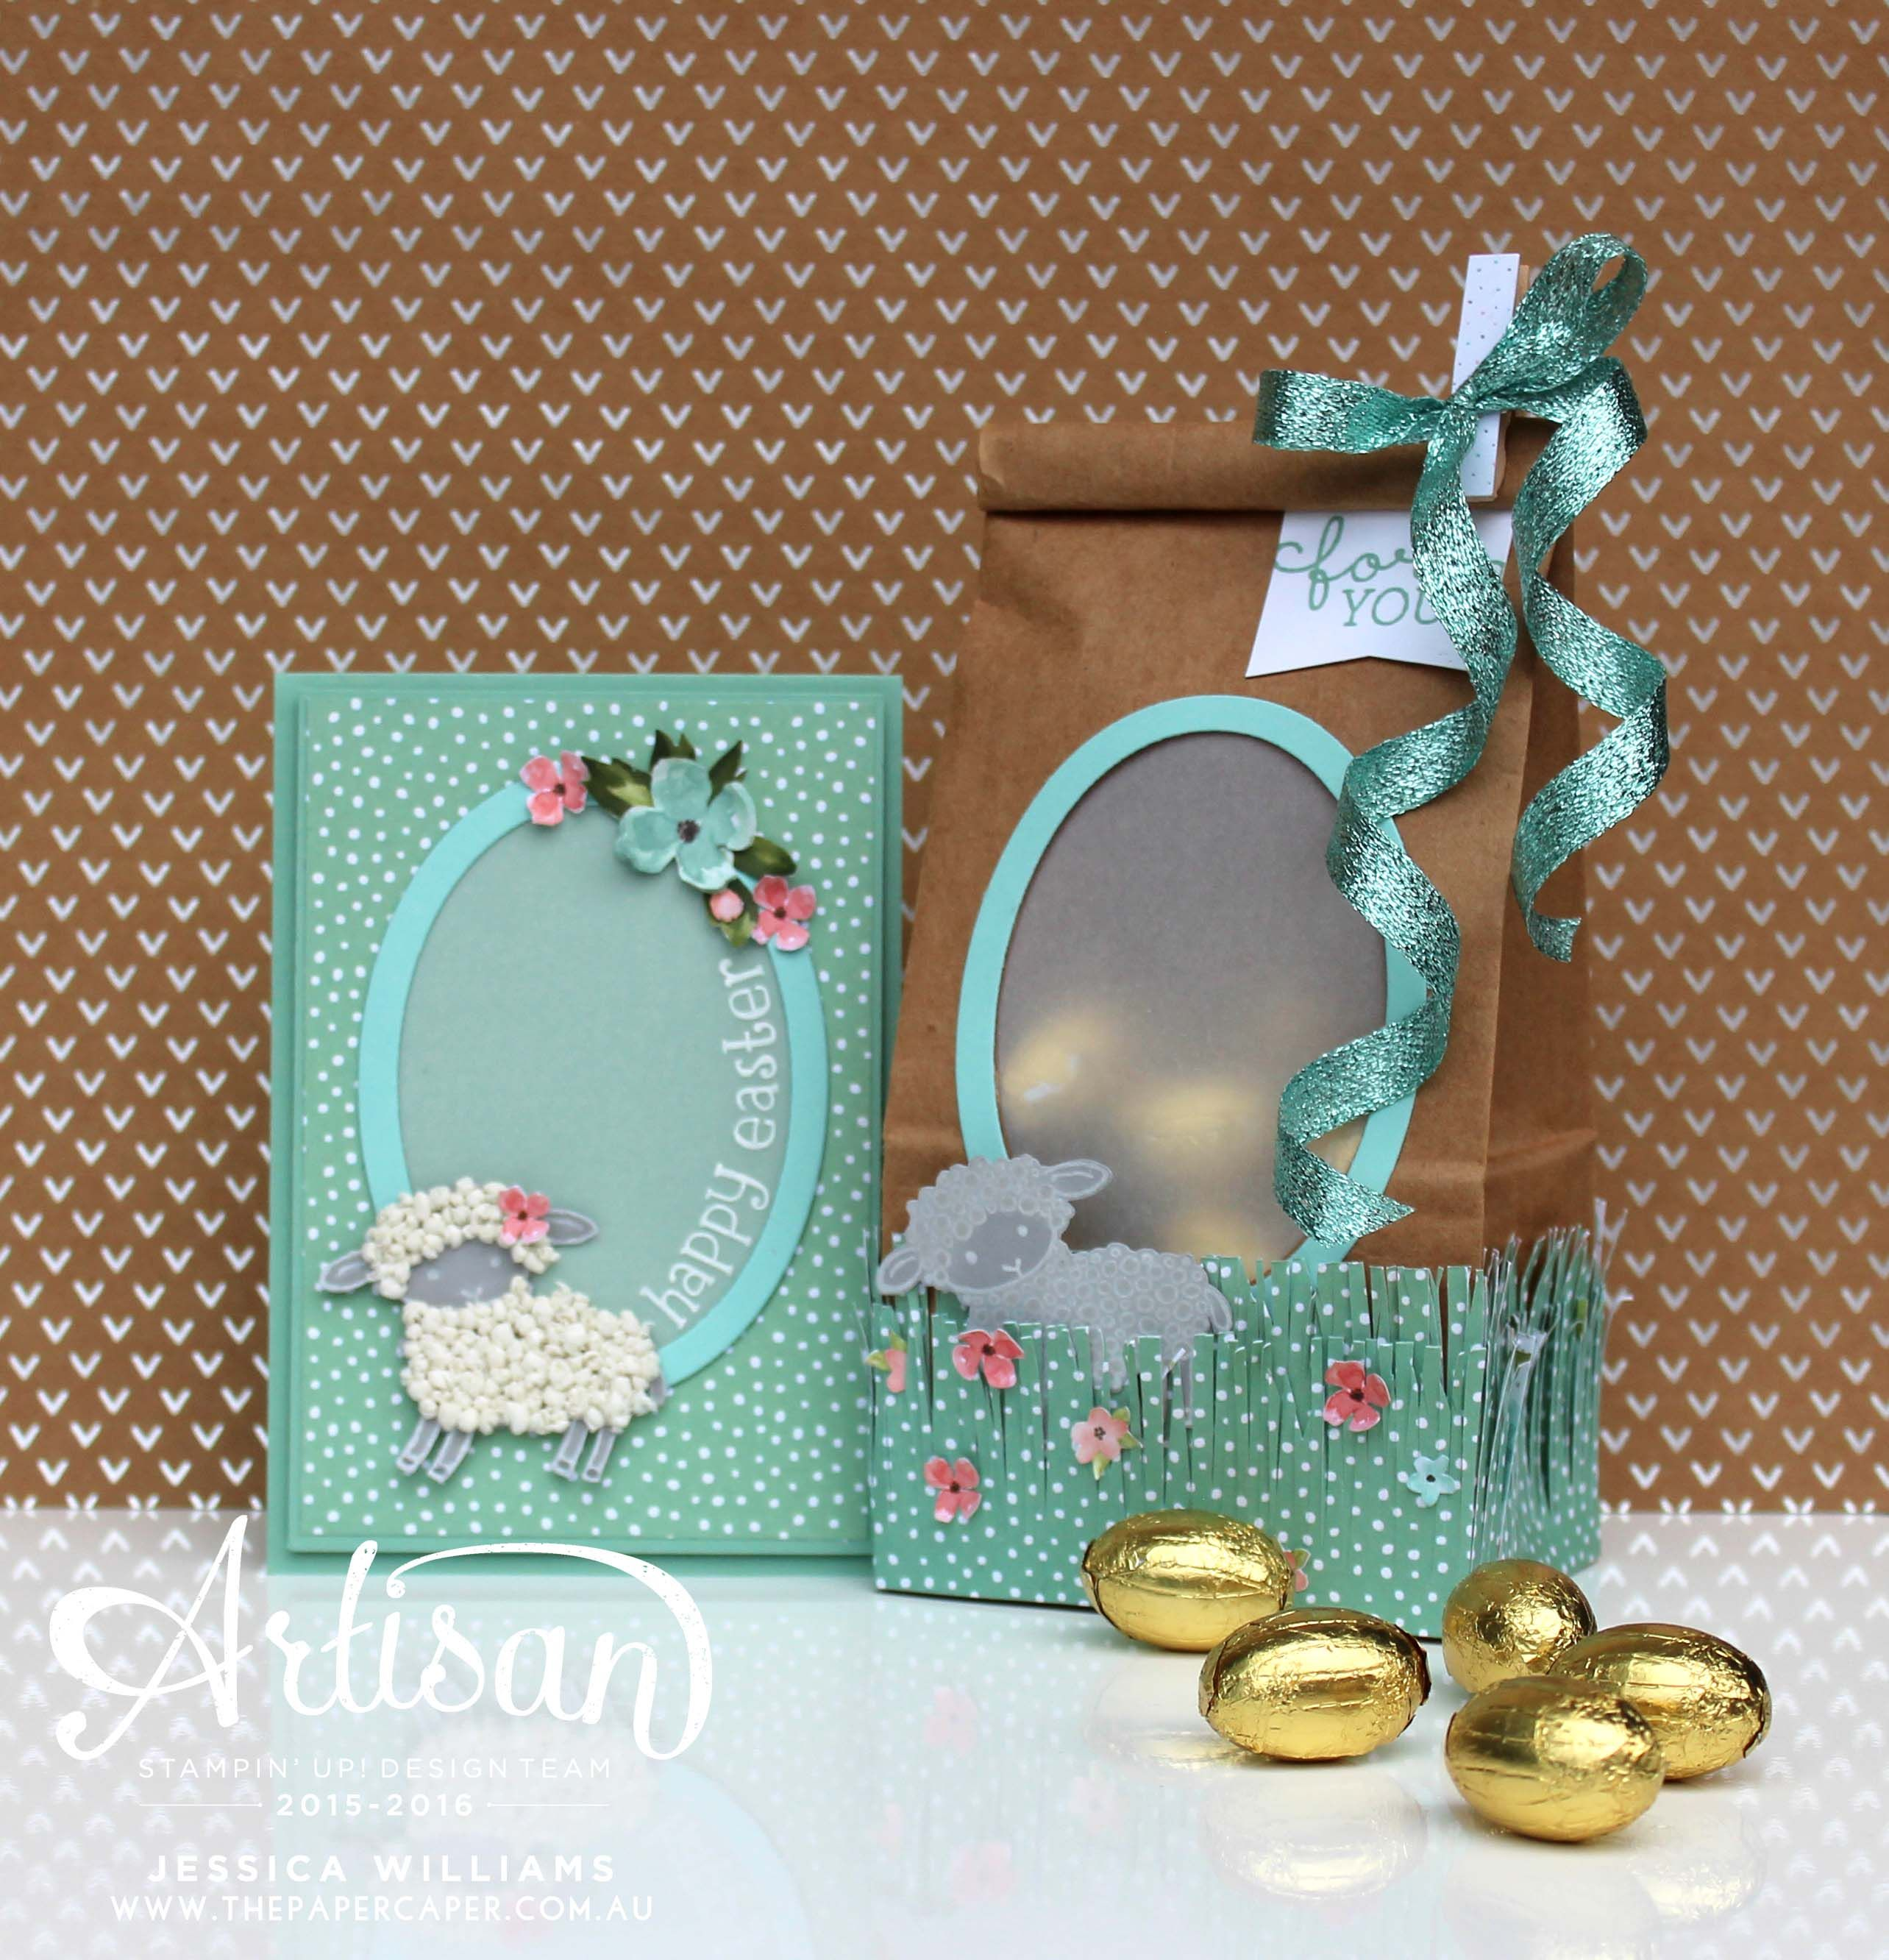 Artisan Design Team blog hop - Easter Lamb - The Paper Caper